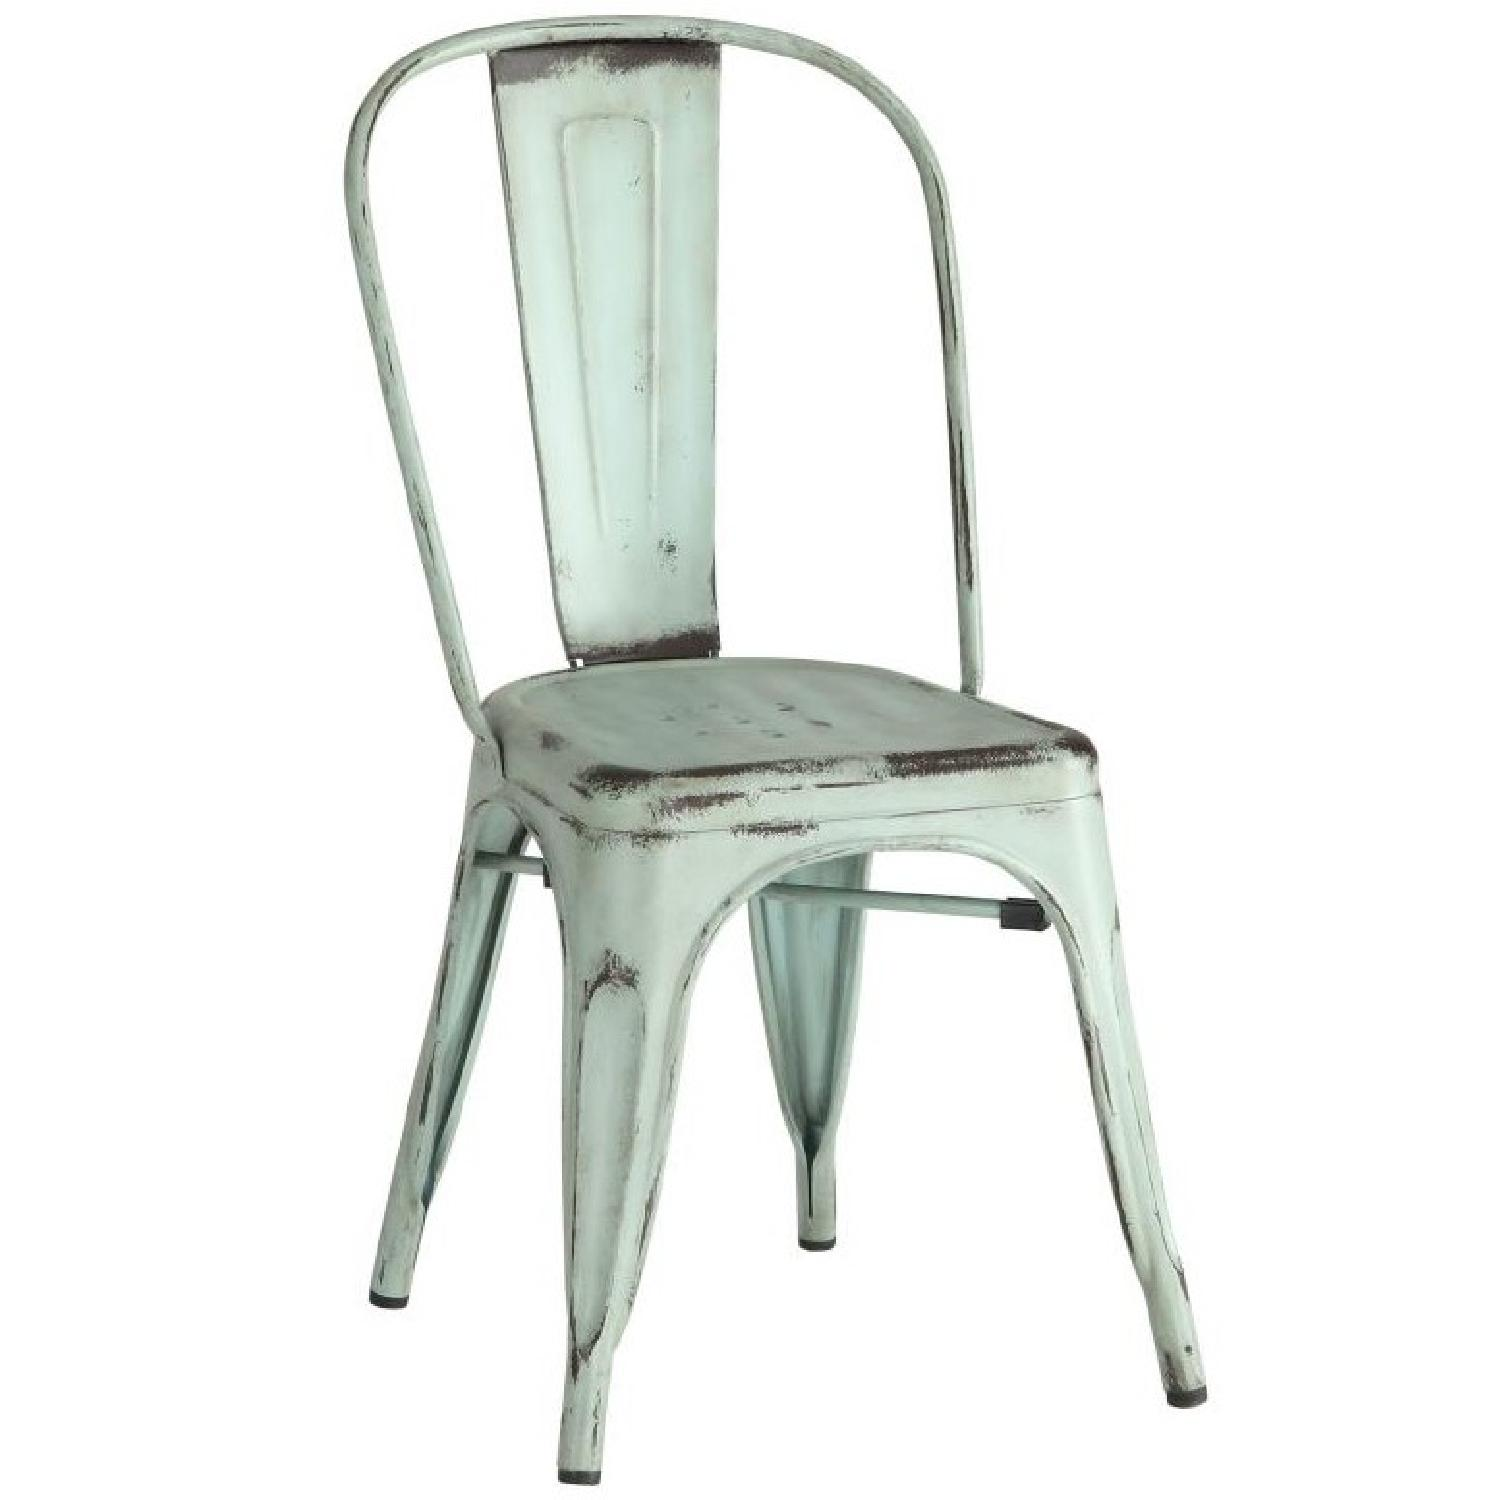 rustic metal dining chairs black and white chair galvanized in antique green aptdeco